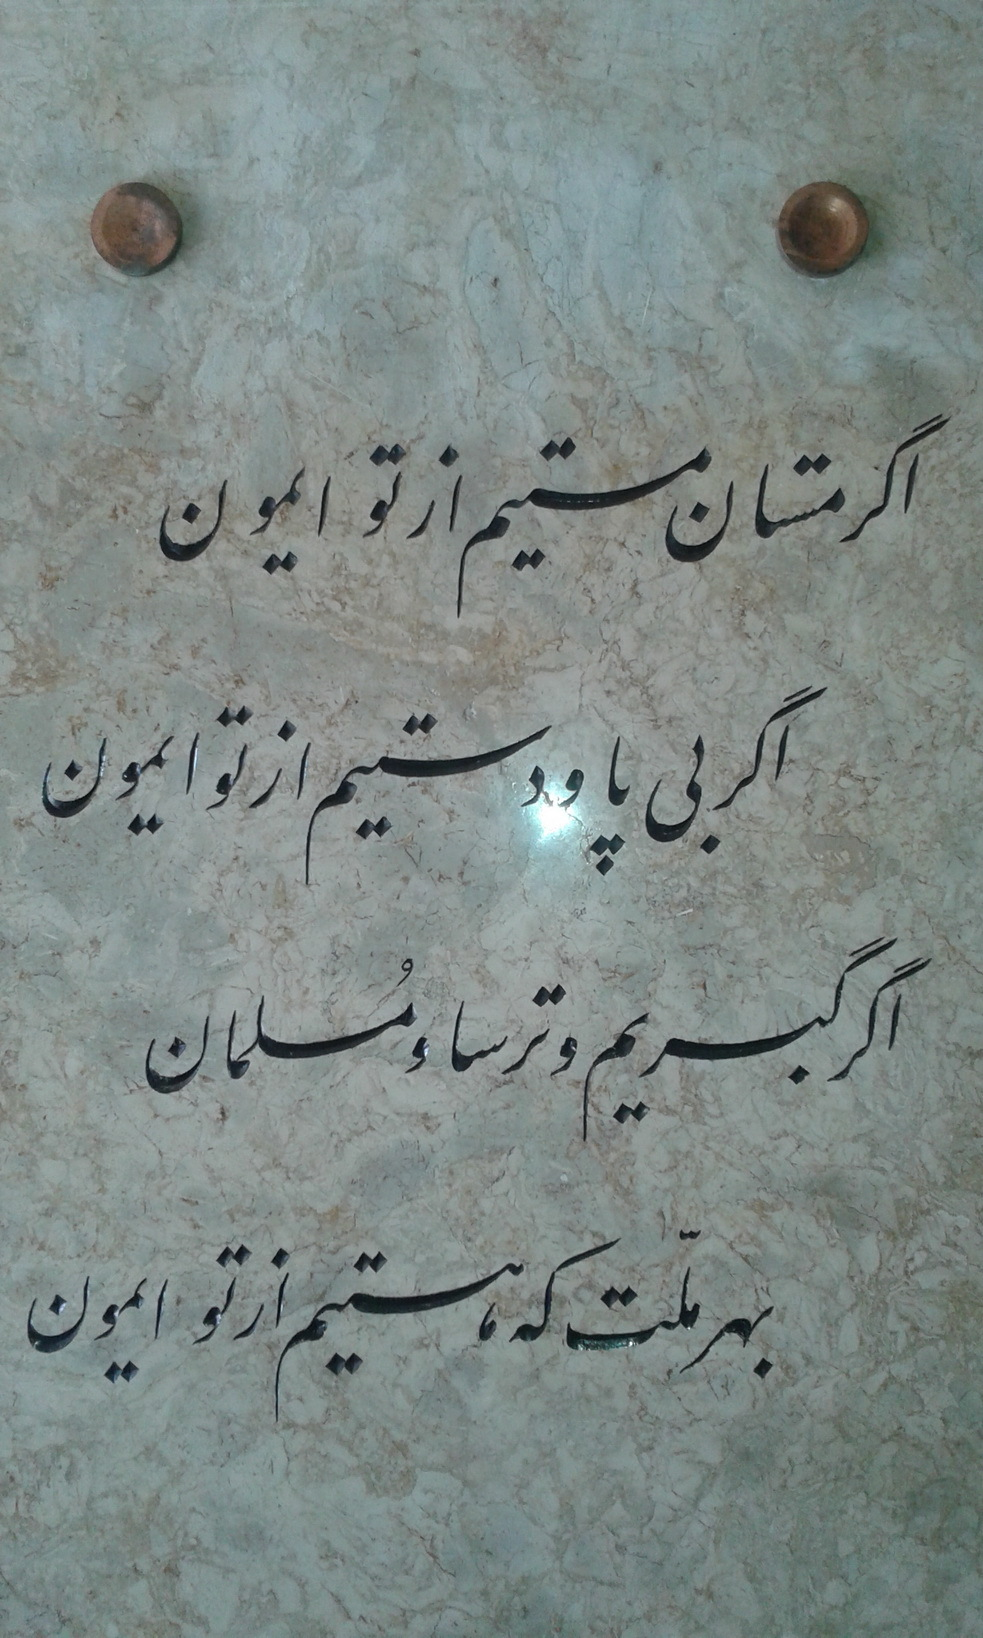 The Tomb of Baba Taher